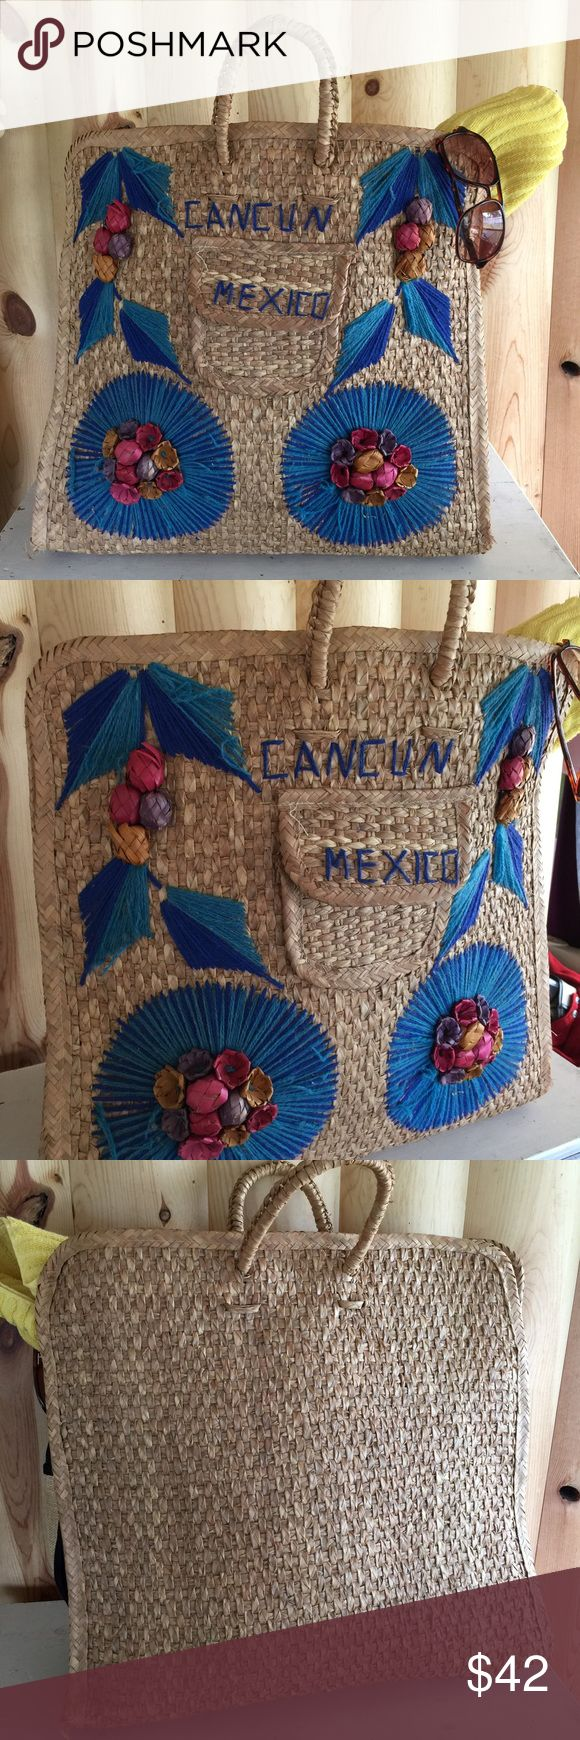 "/vintage/ MEXICO woven straw beach bag/ tote bag Festival-ready 1970s tourist Cancun Mexico souvenir large tote bag. Use for the beach, pool, or anywhere you want to make a statement! Normal wear & gentle fraying from usage- adds to the boho/festival look! See bottom corner photo, both sides look similar. 23"" by 20"" , (including handles) will arrive in a large box Vintage Bags Totes"